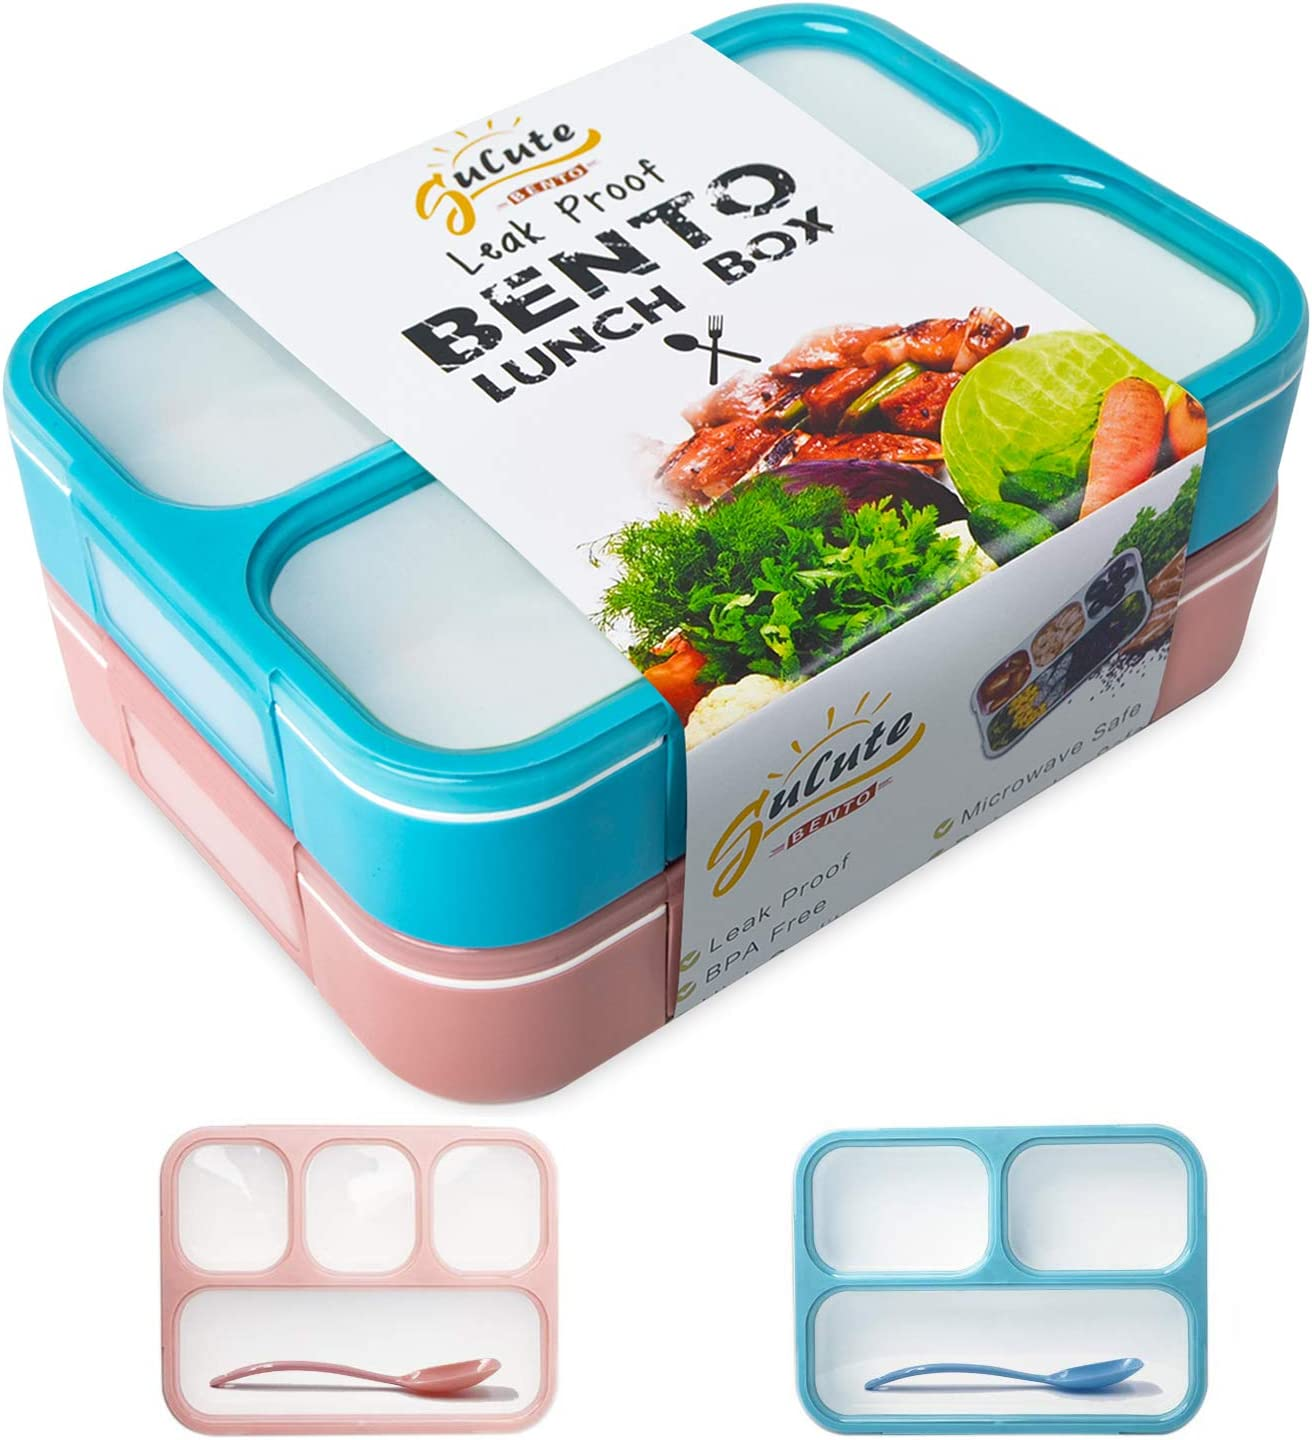 Bento Lunch Box Set [2 Pack] | 3 & 4 Compartment Bentobox Combo for Kids and Adults with Leakproof Design | BPA-Free, Microwave Safe, Dishwasher Safe Lunchbox for Meal Prep